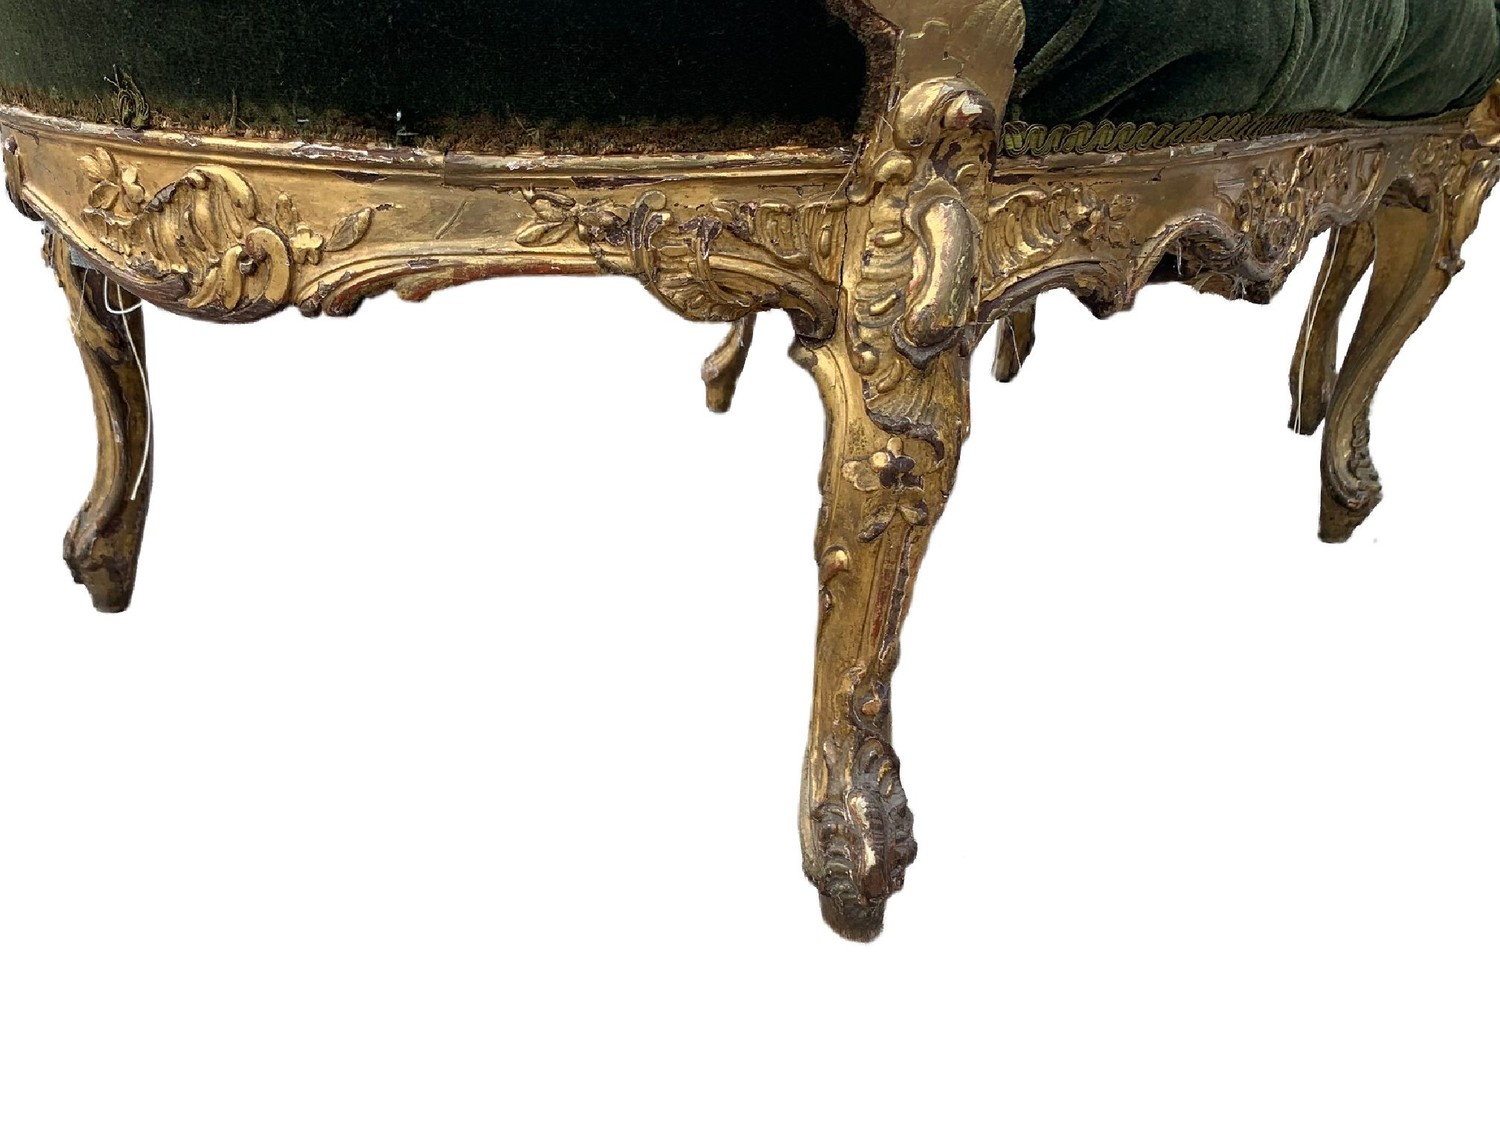 AN 18TH CENTURY FRENCH LOUIS XV ROCOCO CARVED GILTWOOD DUCHESSE DAYBED With button upholstery, frame - Image 7 of 8